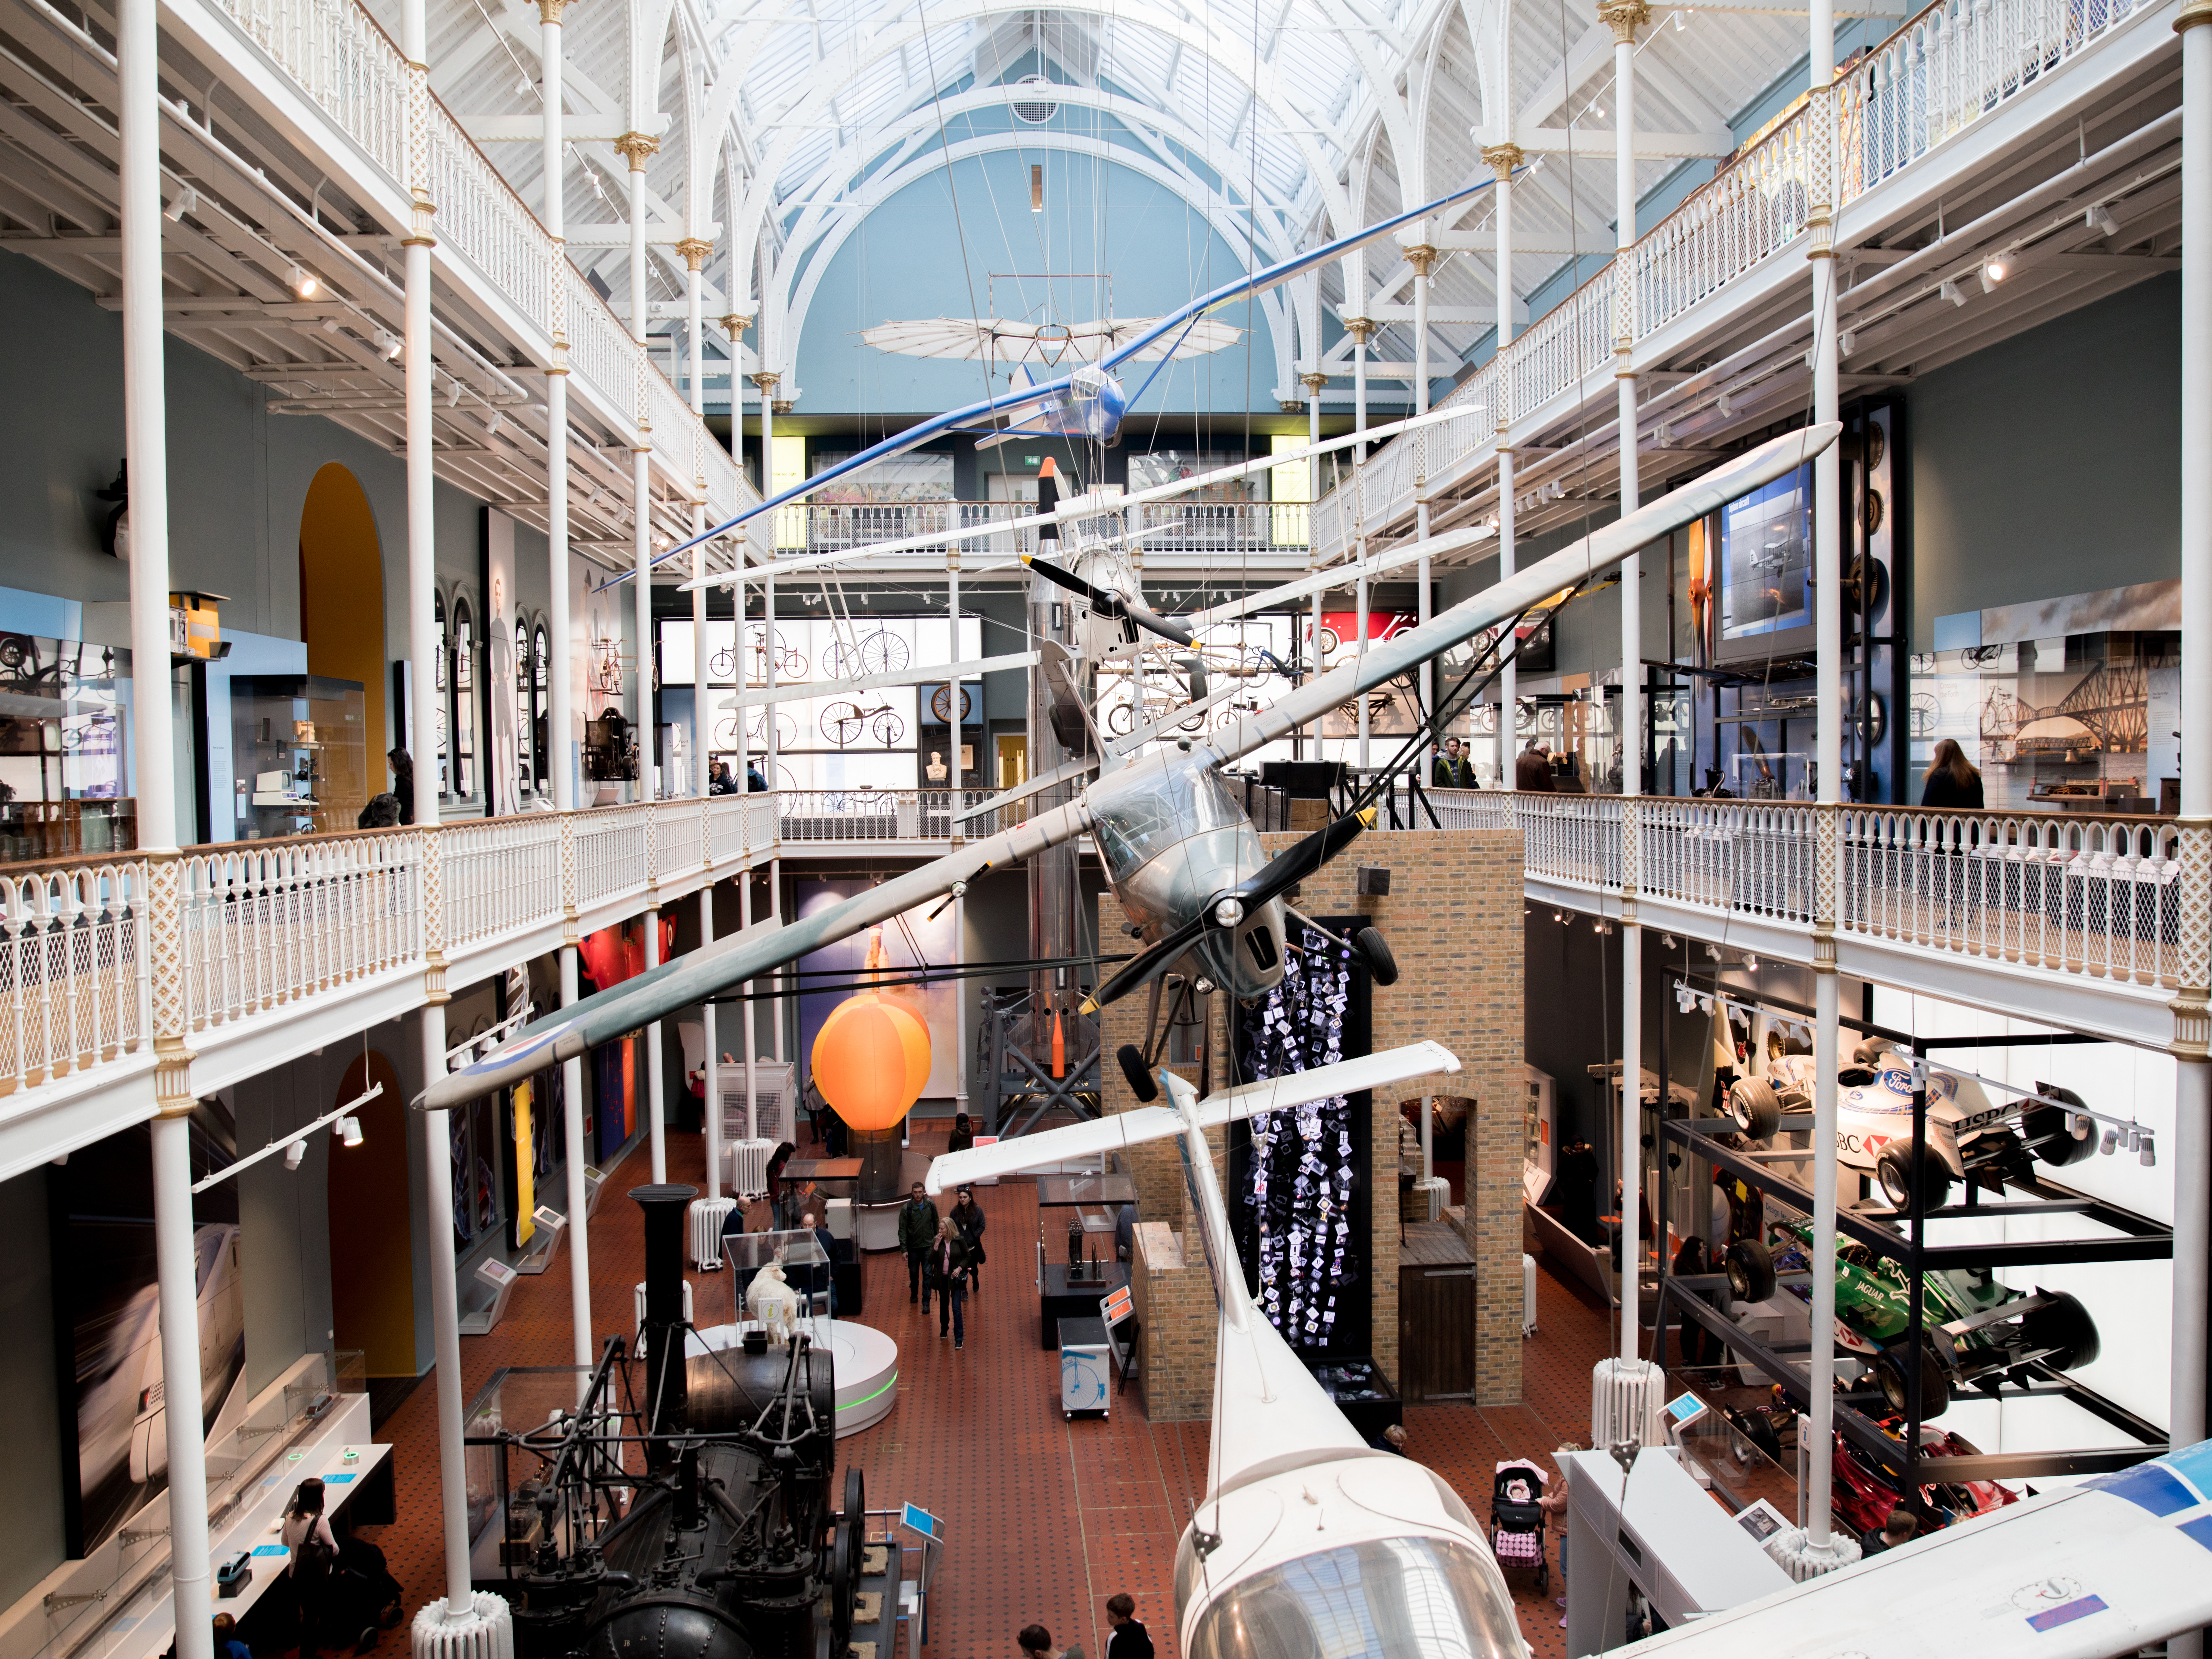 The science and technology gallery.